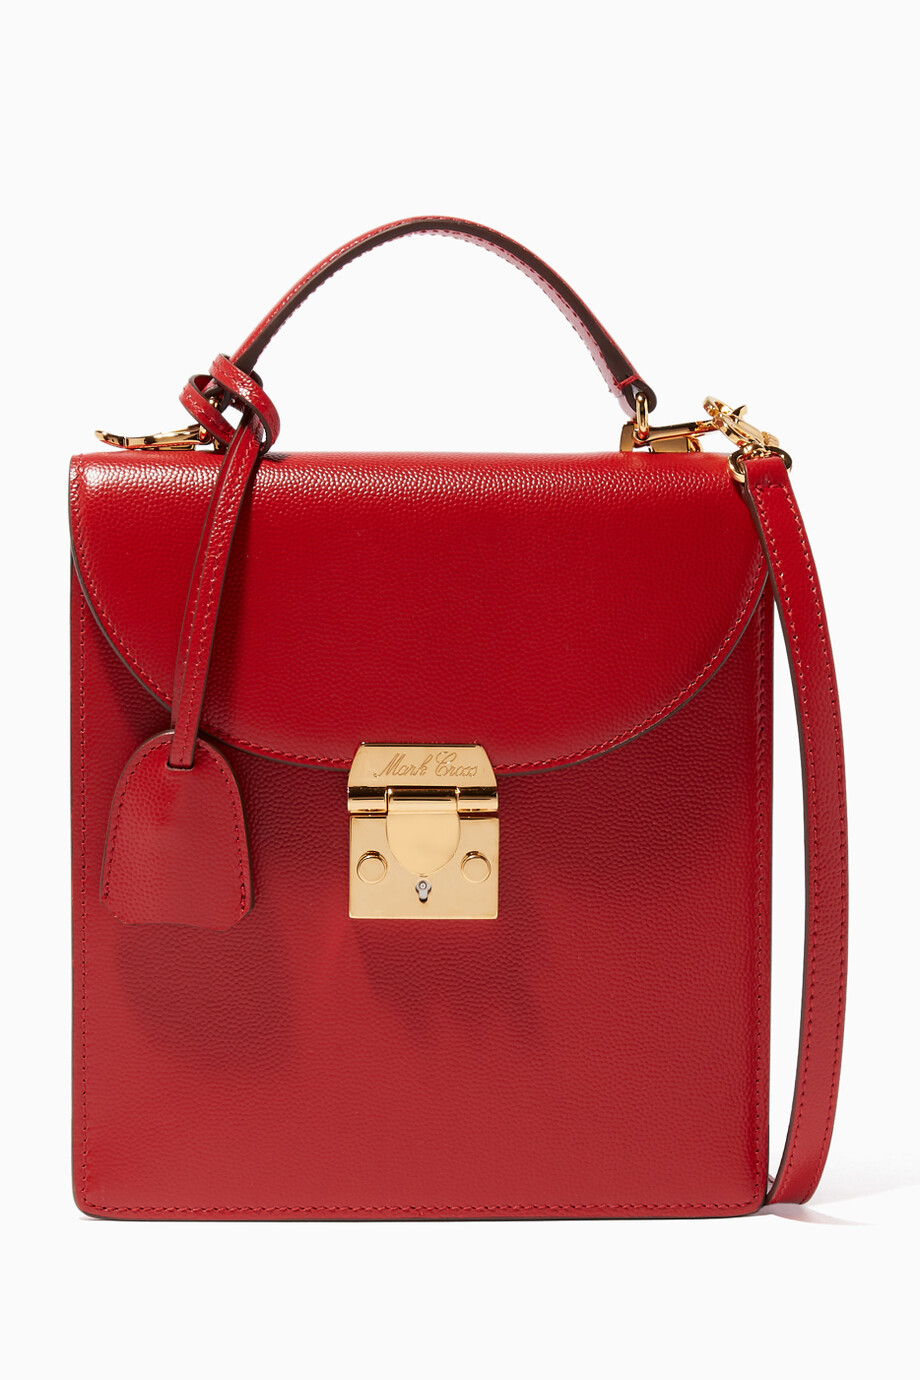 25810f581d45 Shop Mark Cross Red Red Uptown Top-Handle Bag for Women